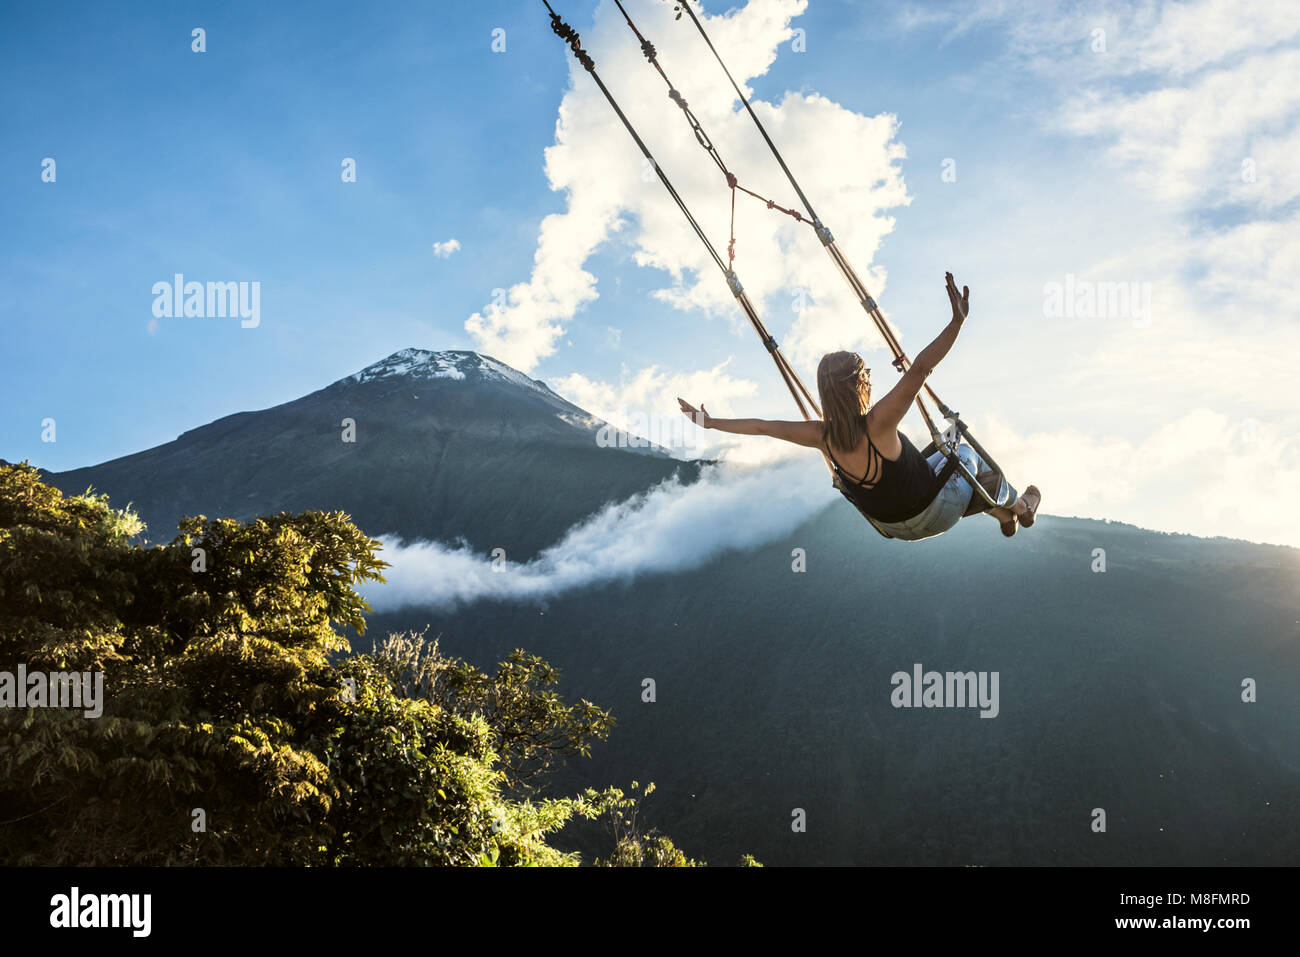 Banos, Ecuador - November 22, 2017: The Swing At The End Of The World Located At Casa Del Arbol, The Tree House - Stock Image